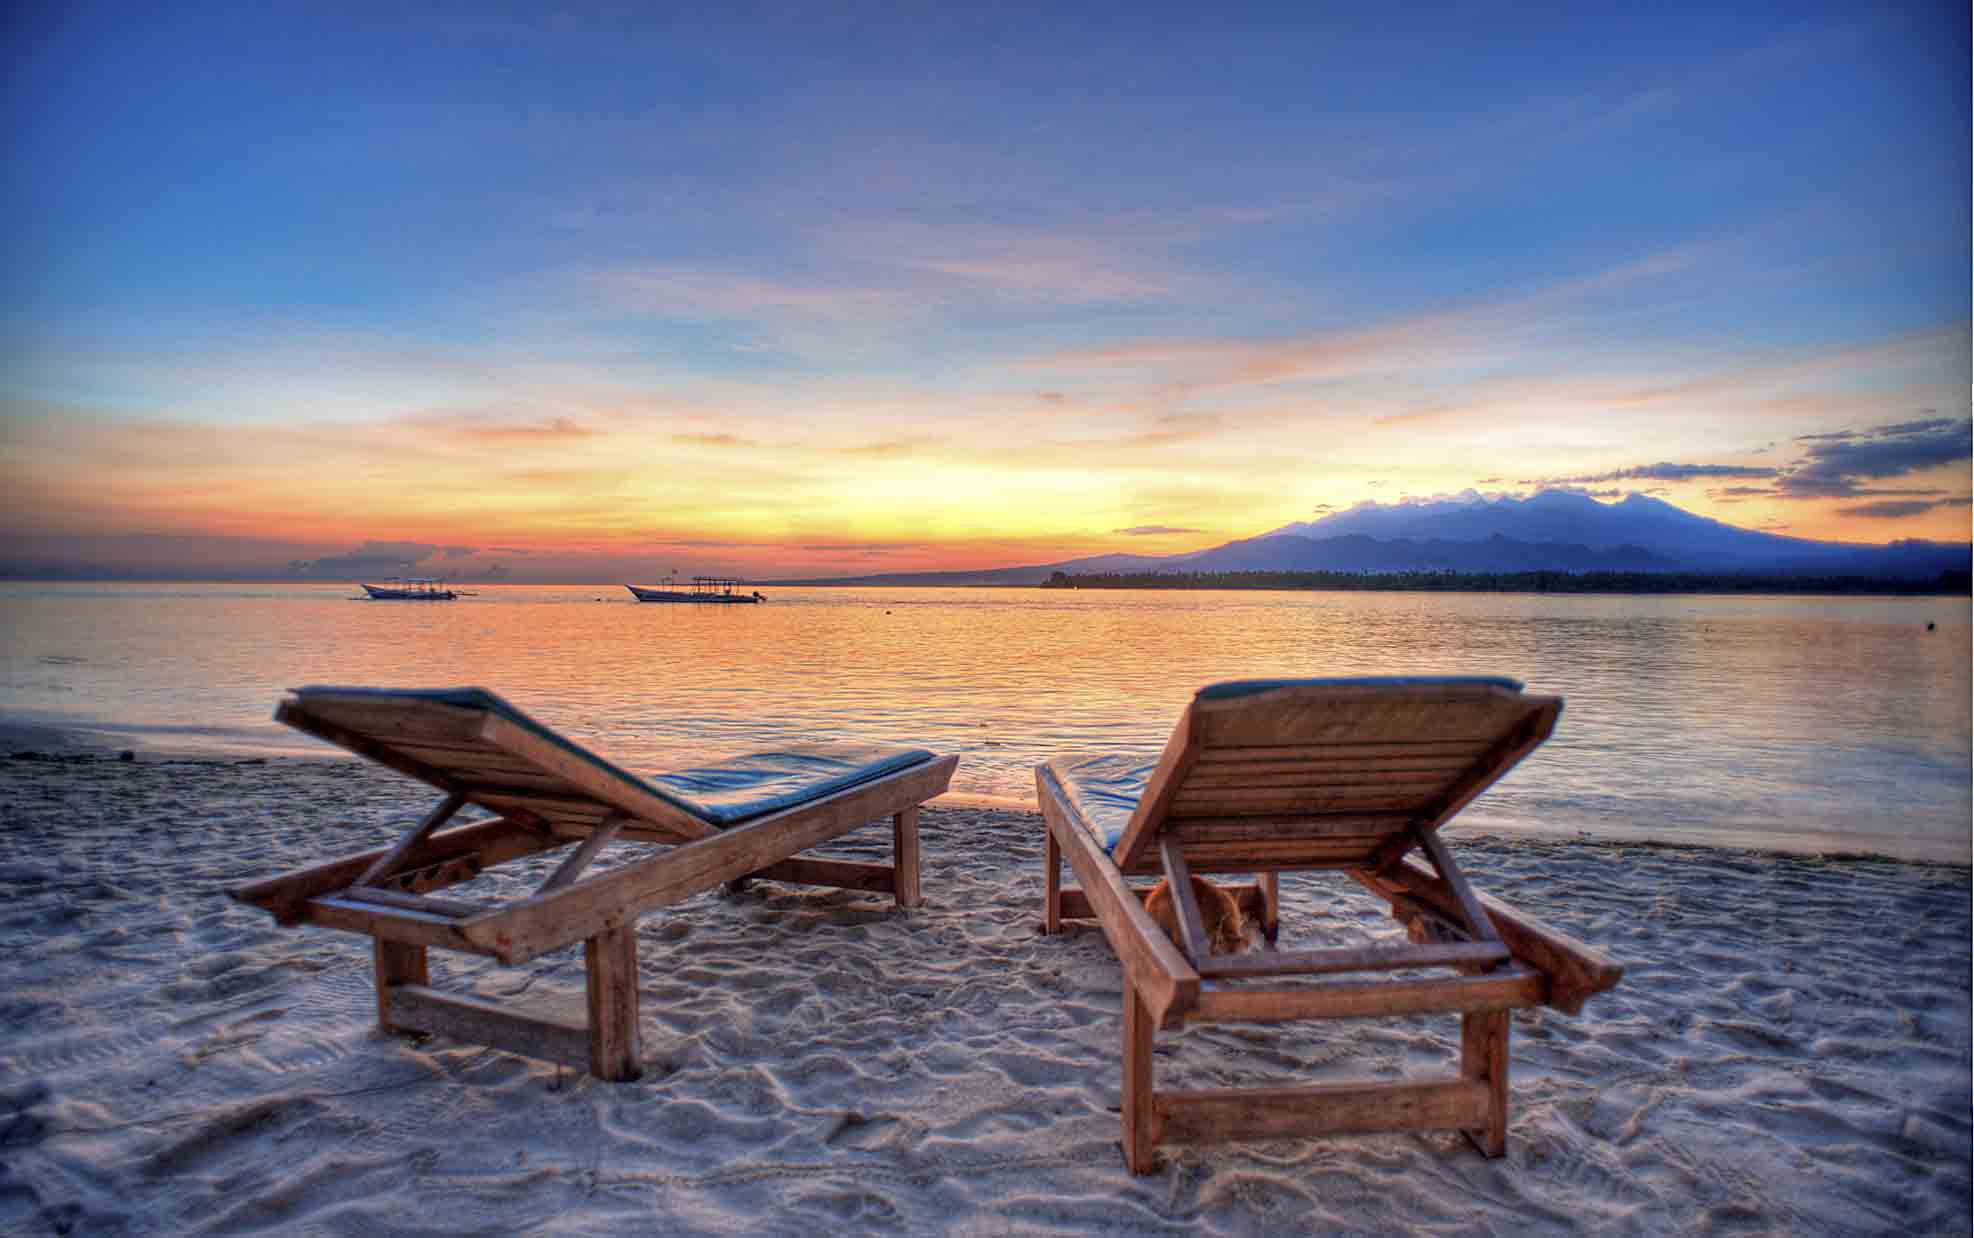 The Best Time Of Year To Visit Gili Air Islands